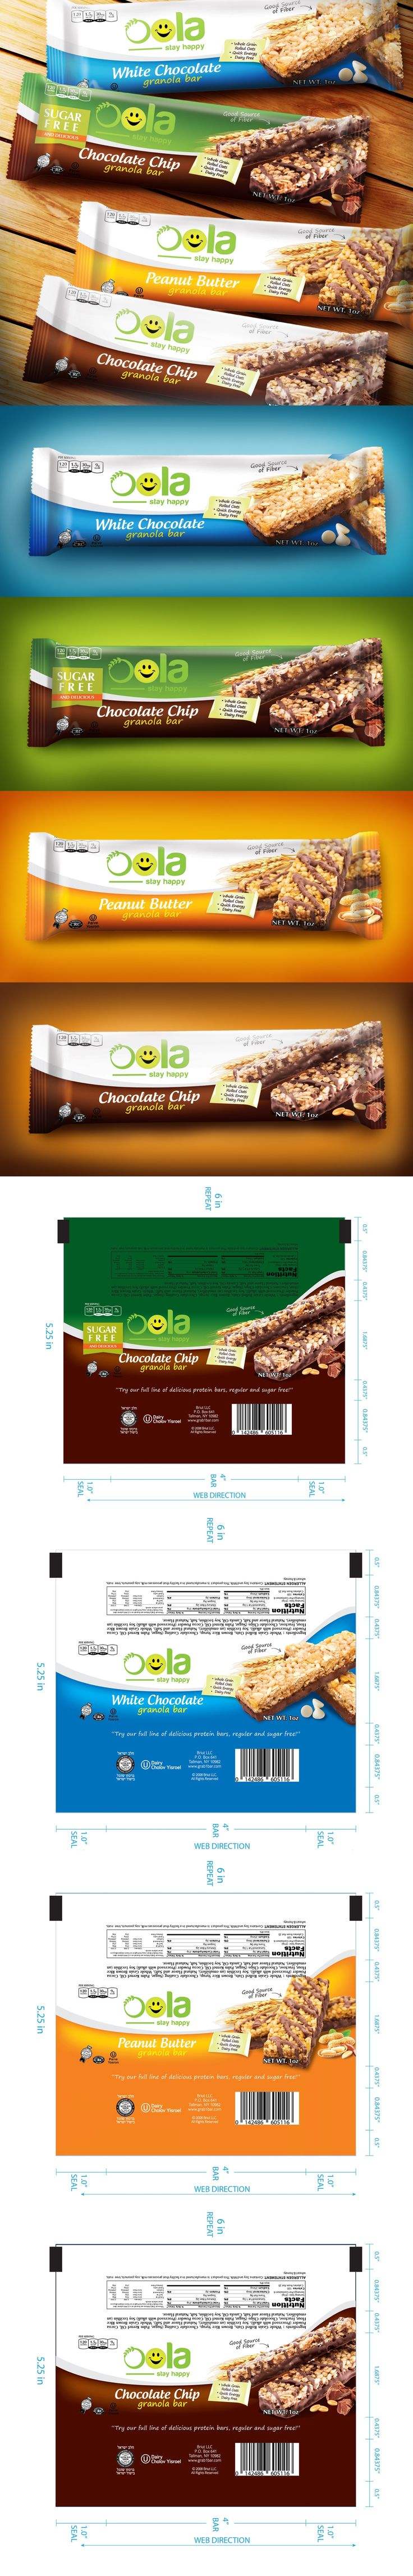 Design #26 by Artphilia | Create protein bar wrappers